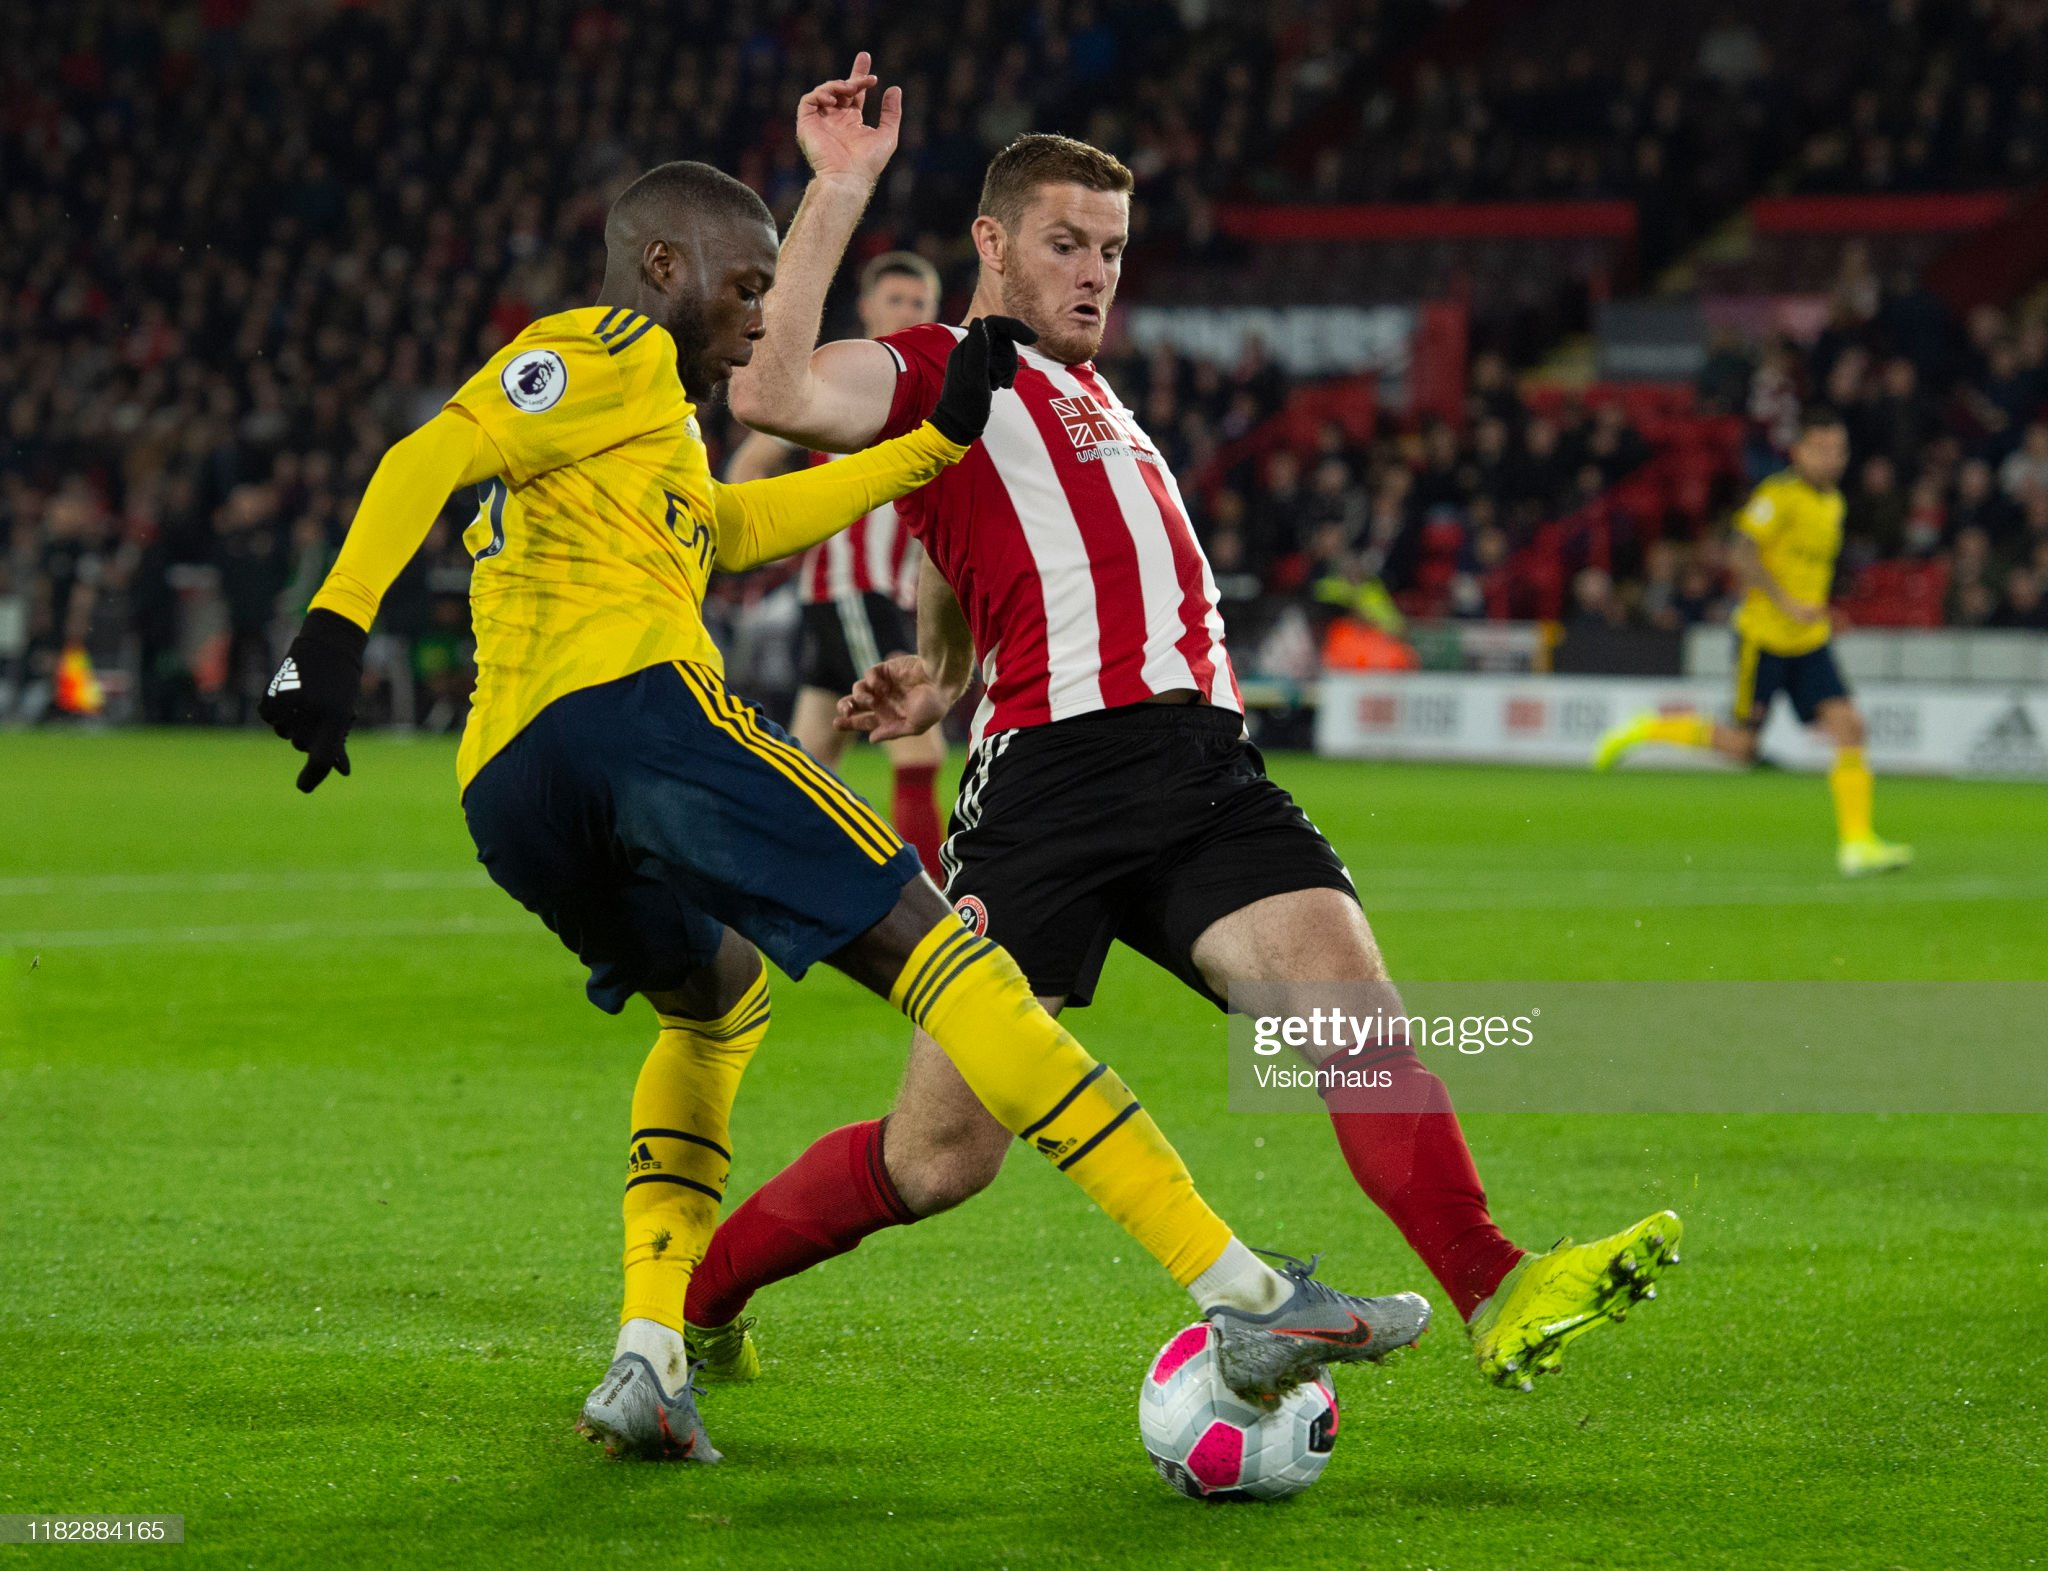 Sheffield United vs Arsenal Preview, prediction and odds